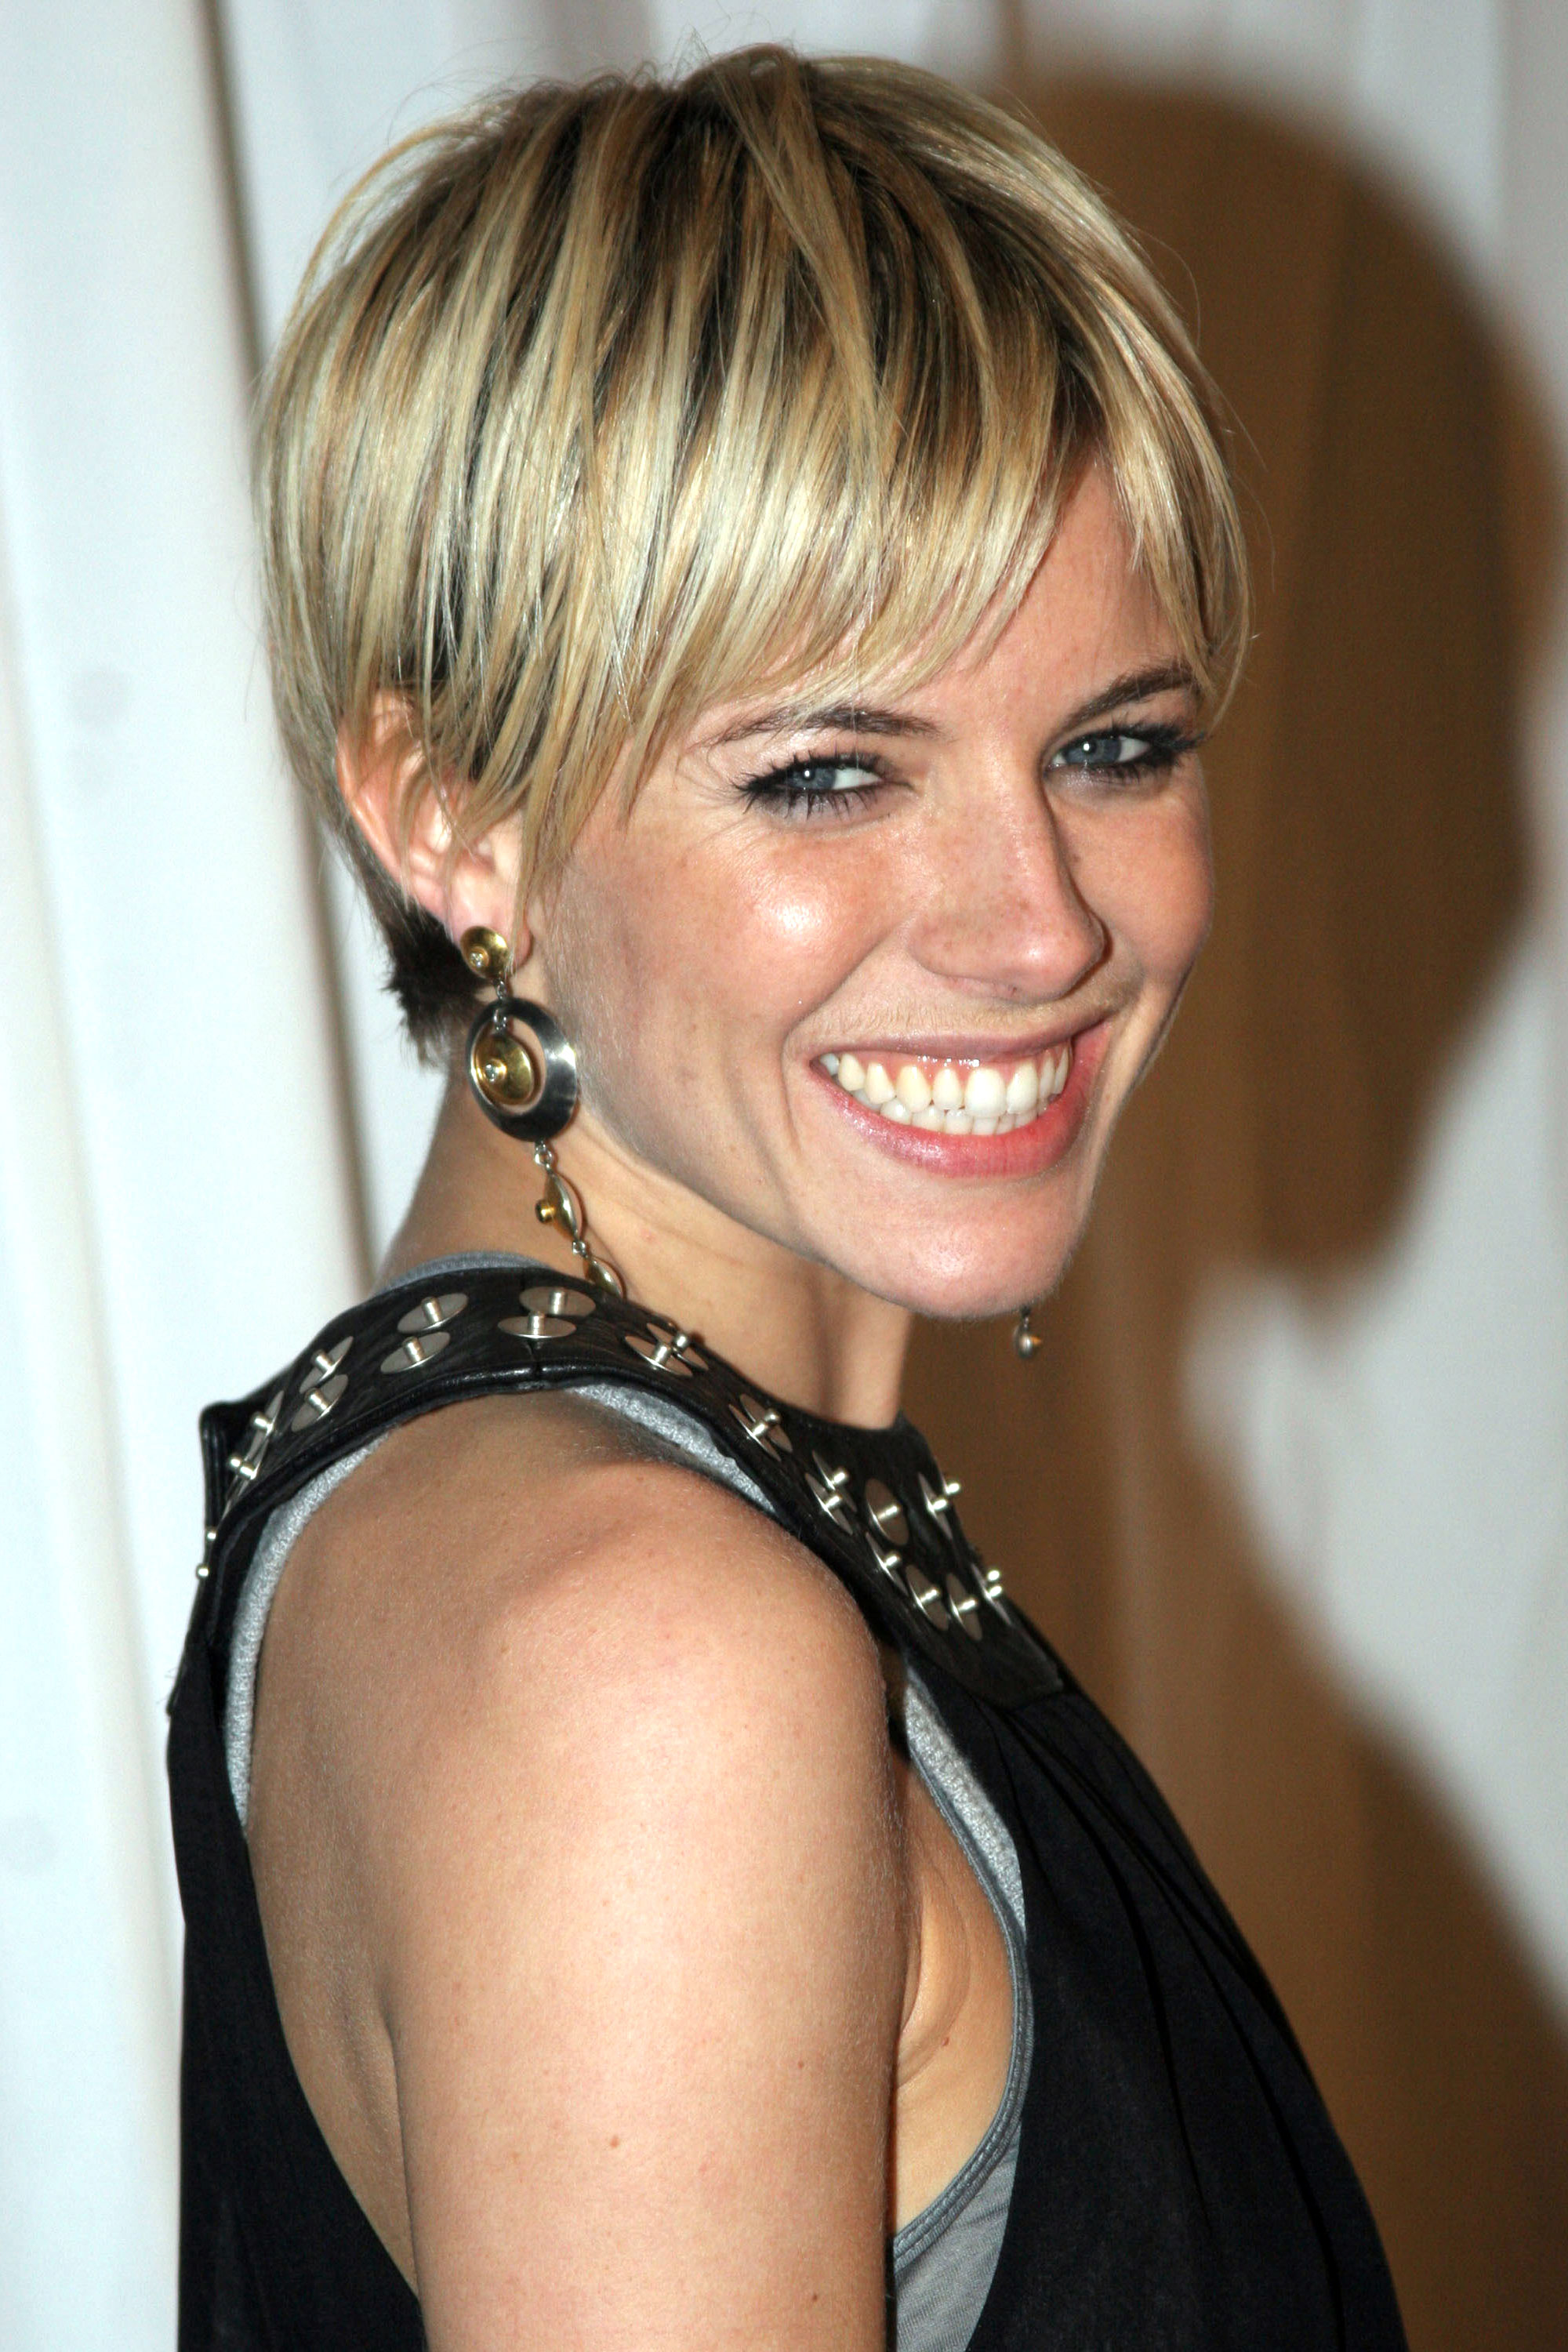 Marvelous 42 Pixie Cuts We Love For 2017 Short Pixie Hairstyles From Hairstyle Inspiration Daily Dogsangcom